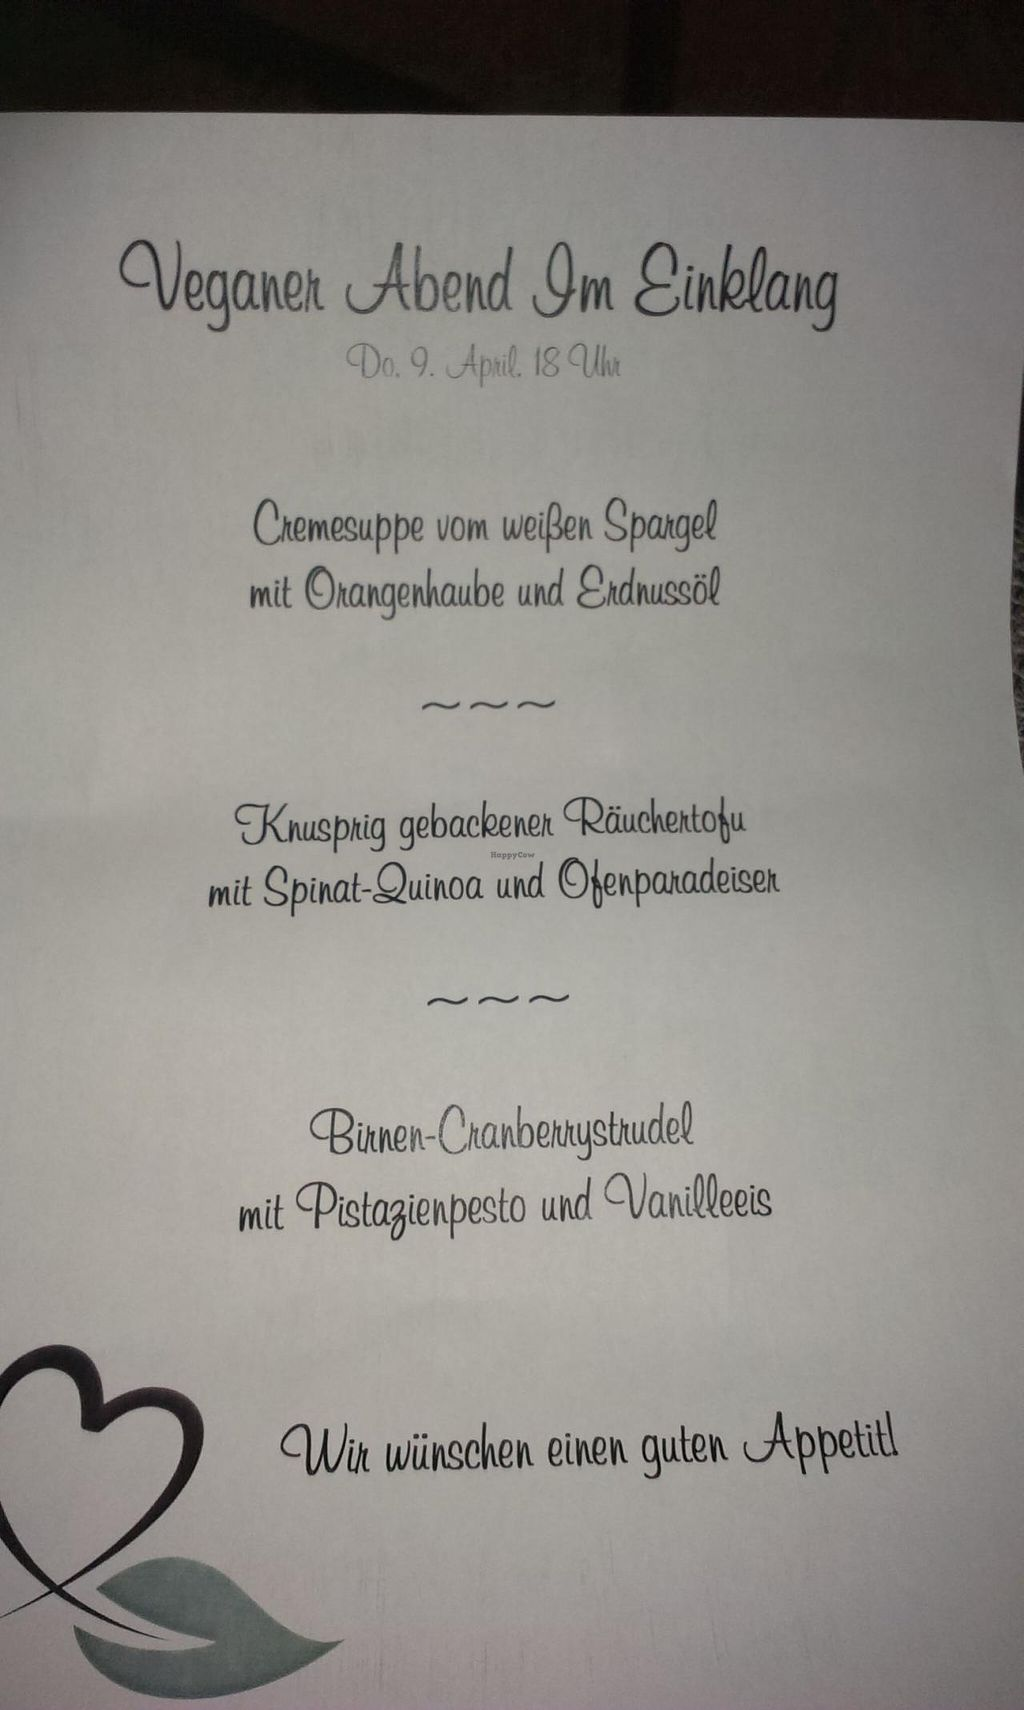 """Photo of CLOSED: Im Einklang Landgasthaus  by <a href=""""/members/profile/christa.fleck"""">christa.fleck</a> <br/>The 3-course menu <br/> April 10, 2015  - <a href='/contact/abuse/image/57264/98496'>Report</a>"""